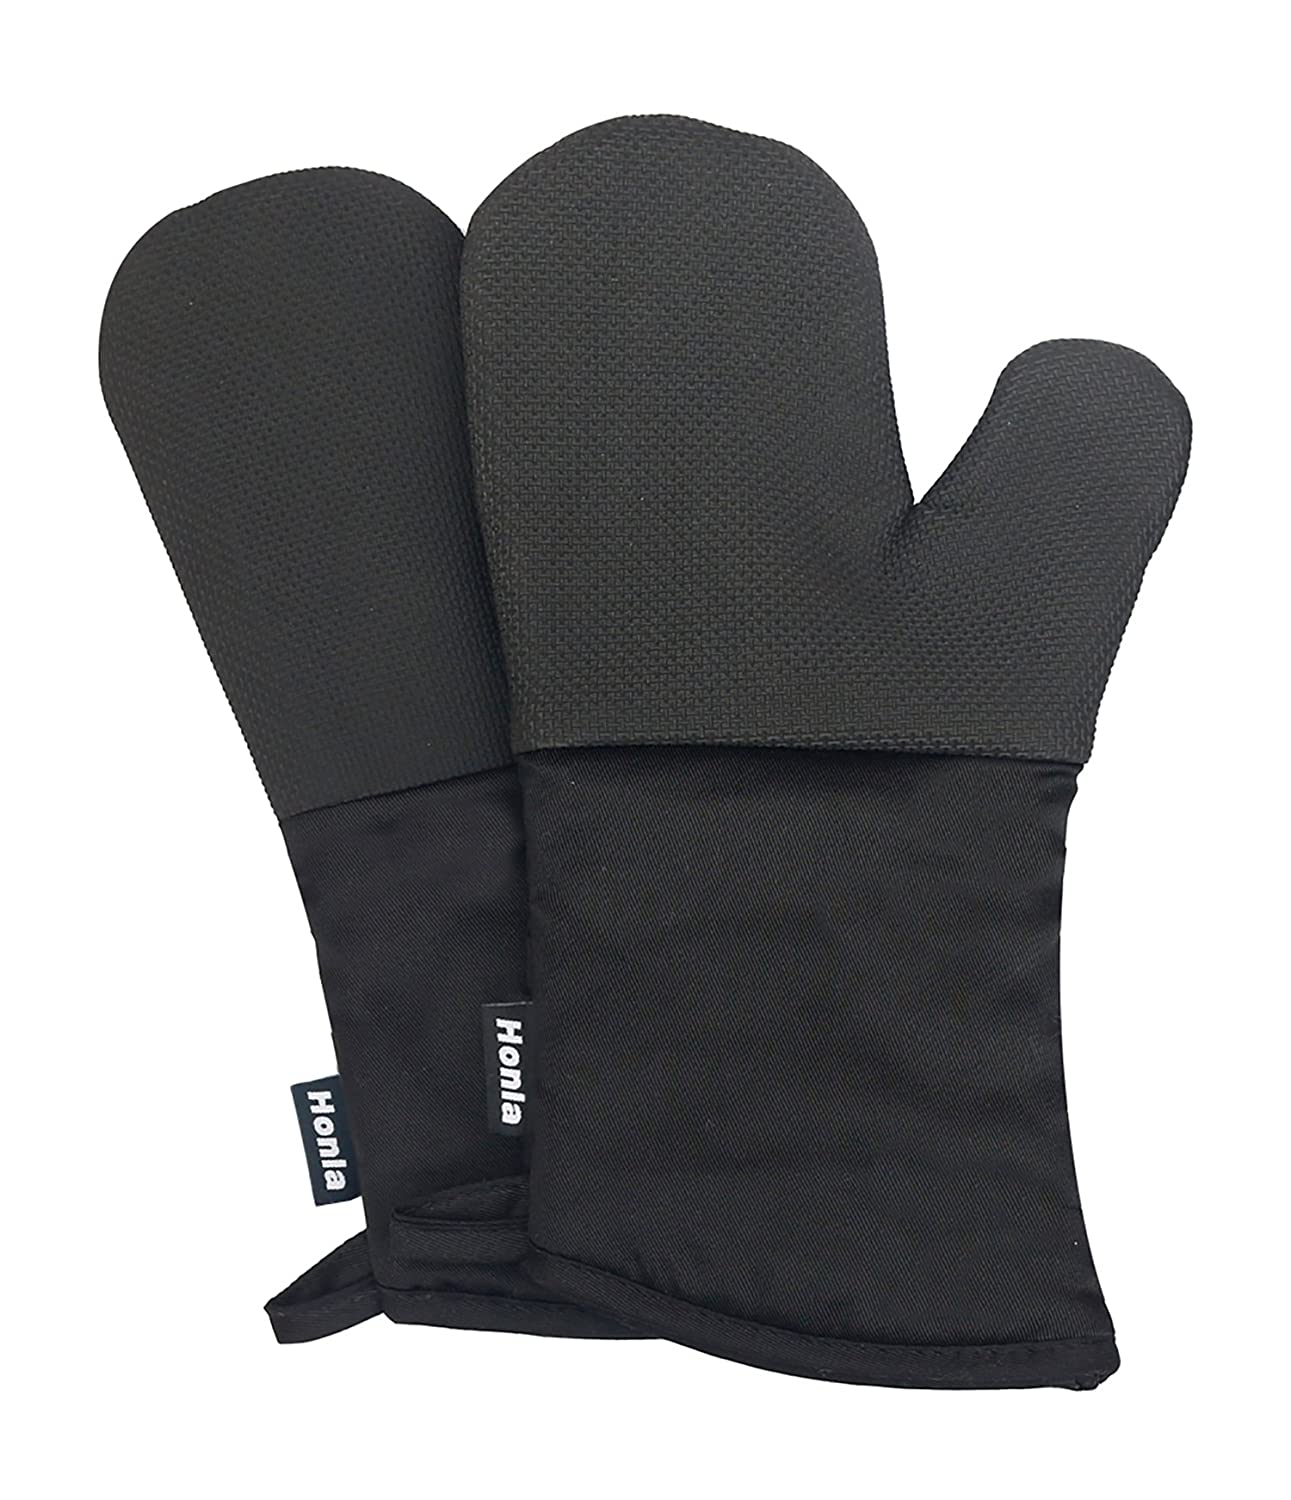 Neoprene Oven Mitts - Heat Resistant to 500° F, 1 Pair of Non-Slip Kitchen Oven Gloves for Cooking, Baking, Grilling, Barbecue Potholders, Black - Honla HKOM-007